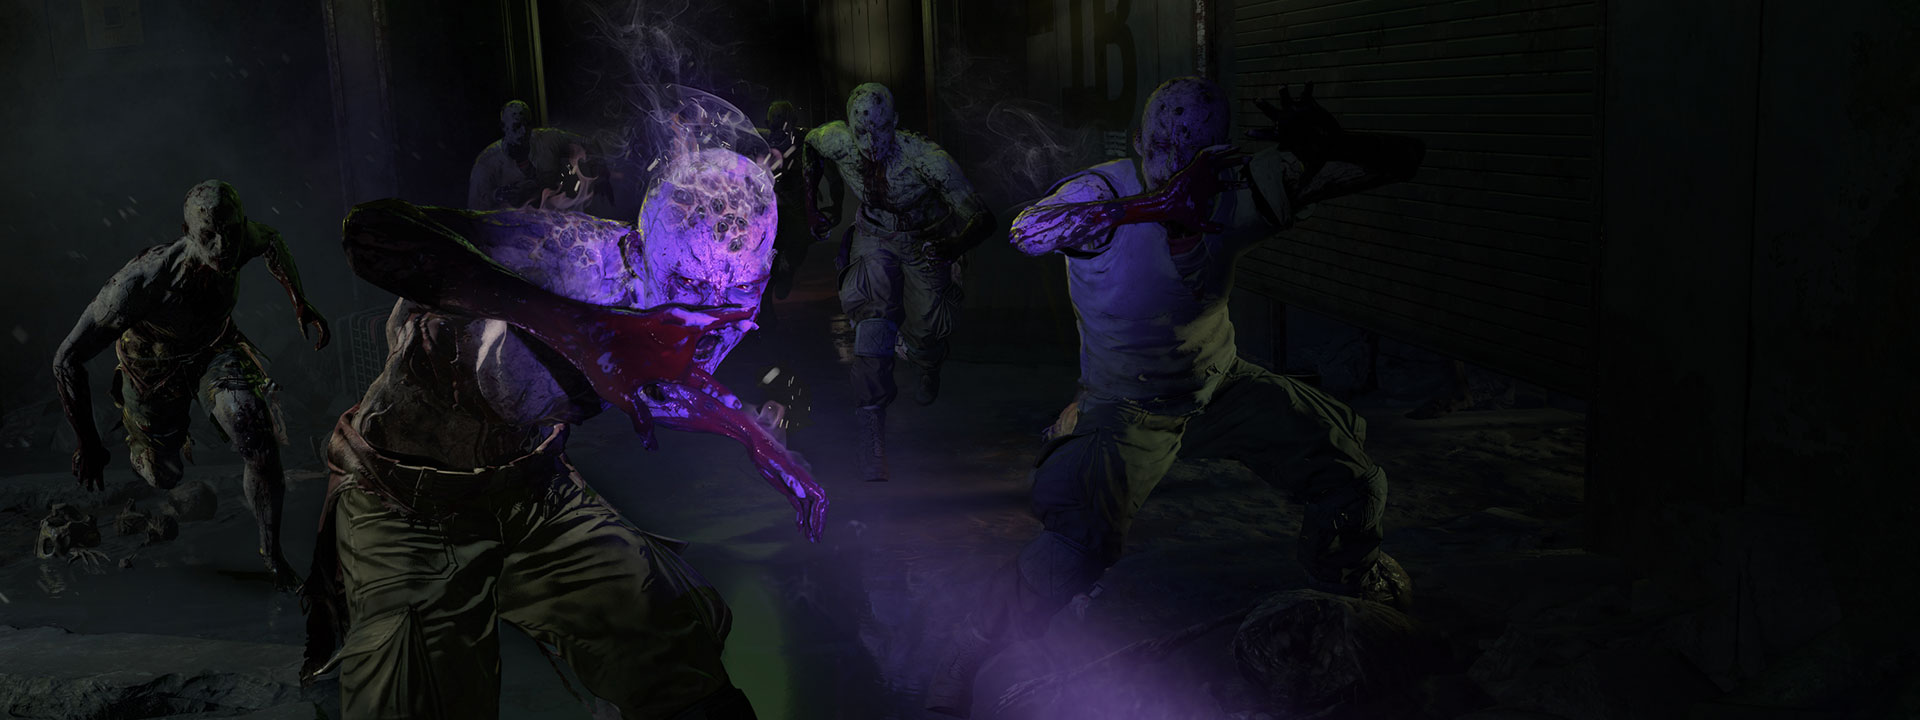 Horde of infected in purple light coming toward player